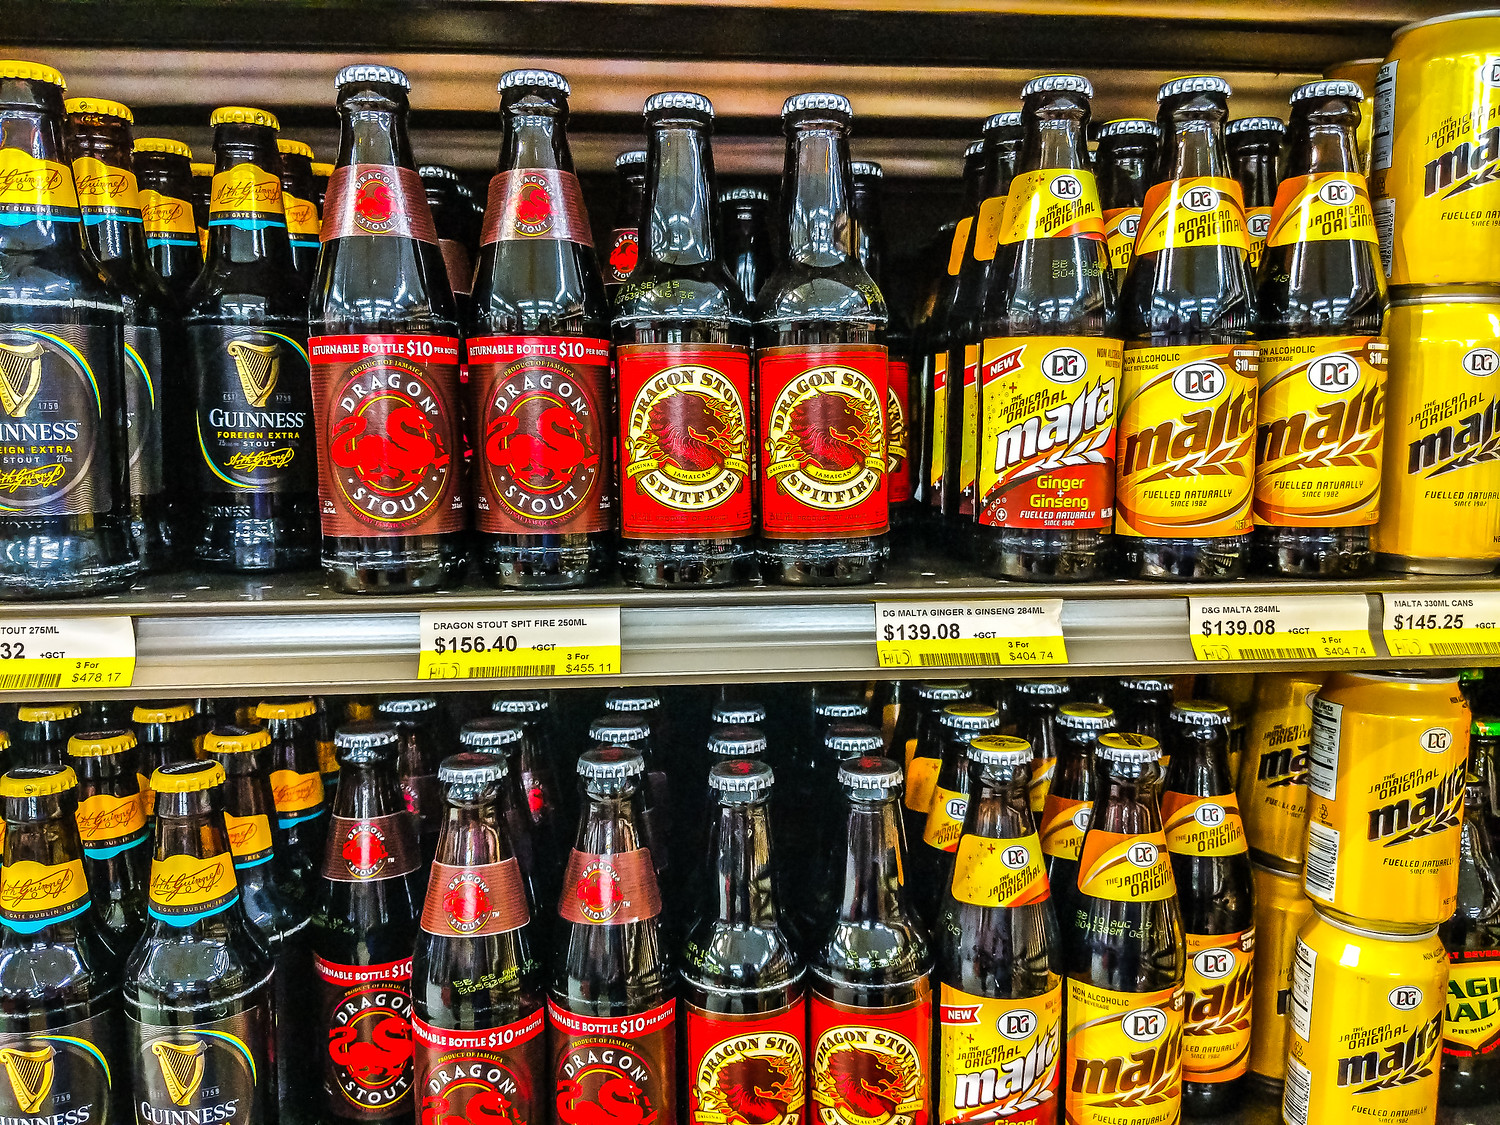 Drinks in Jamaica on a supermarket shelf including Guinness Foreign extra beer, Dragon Stout and non-alcoholic malta.